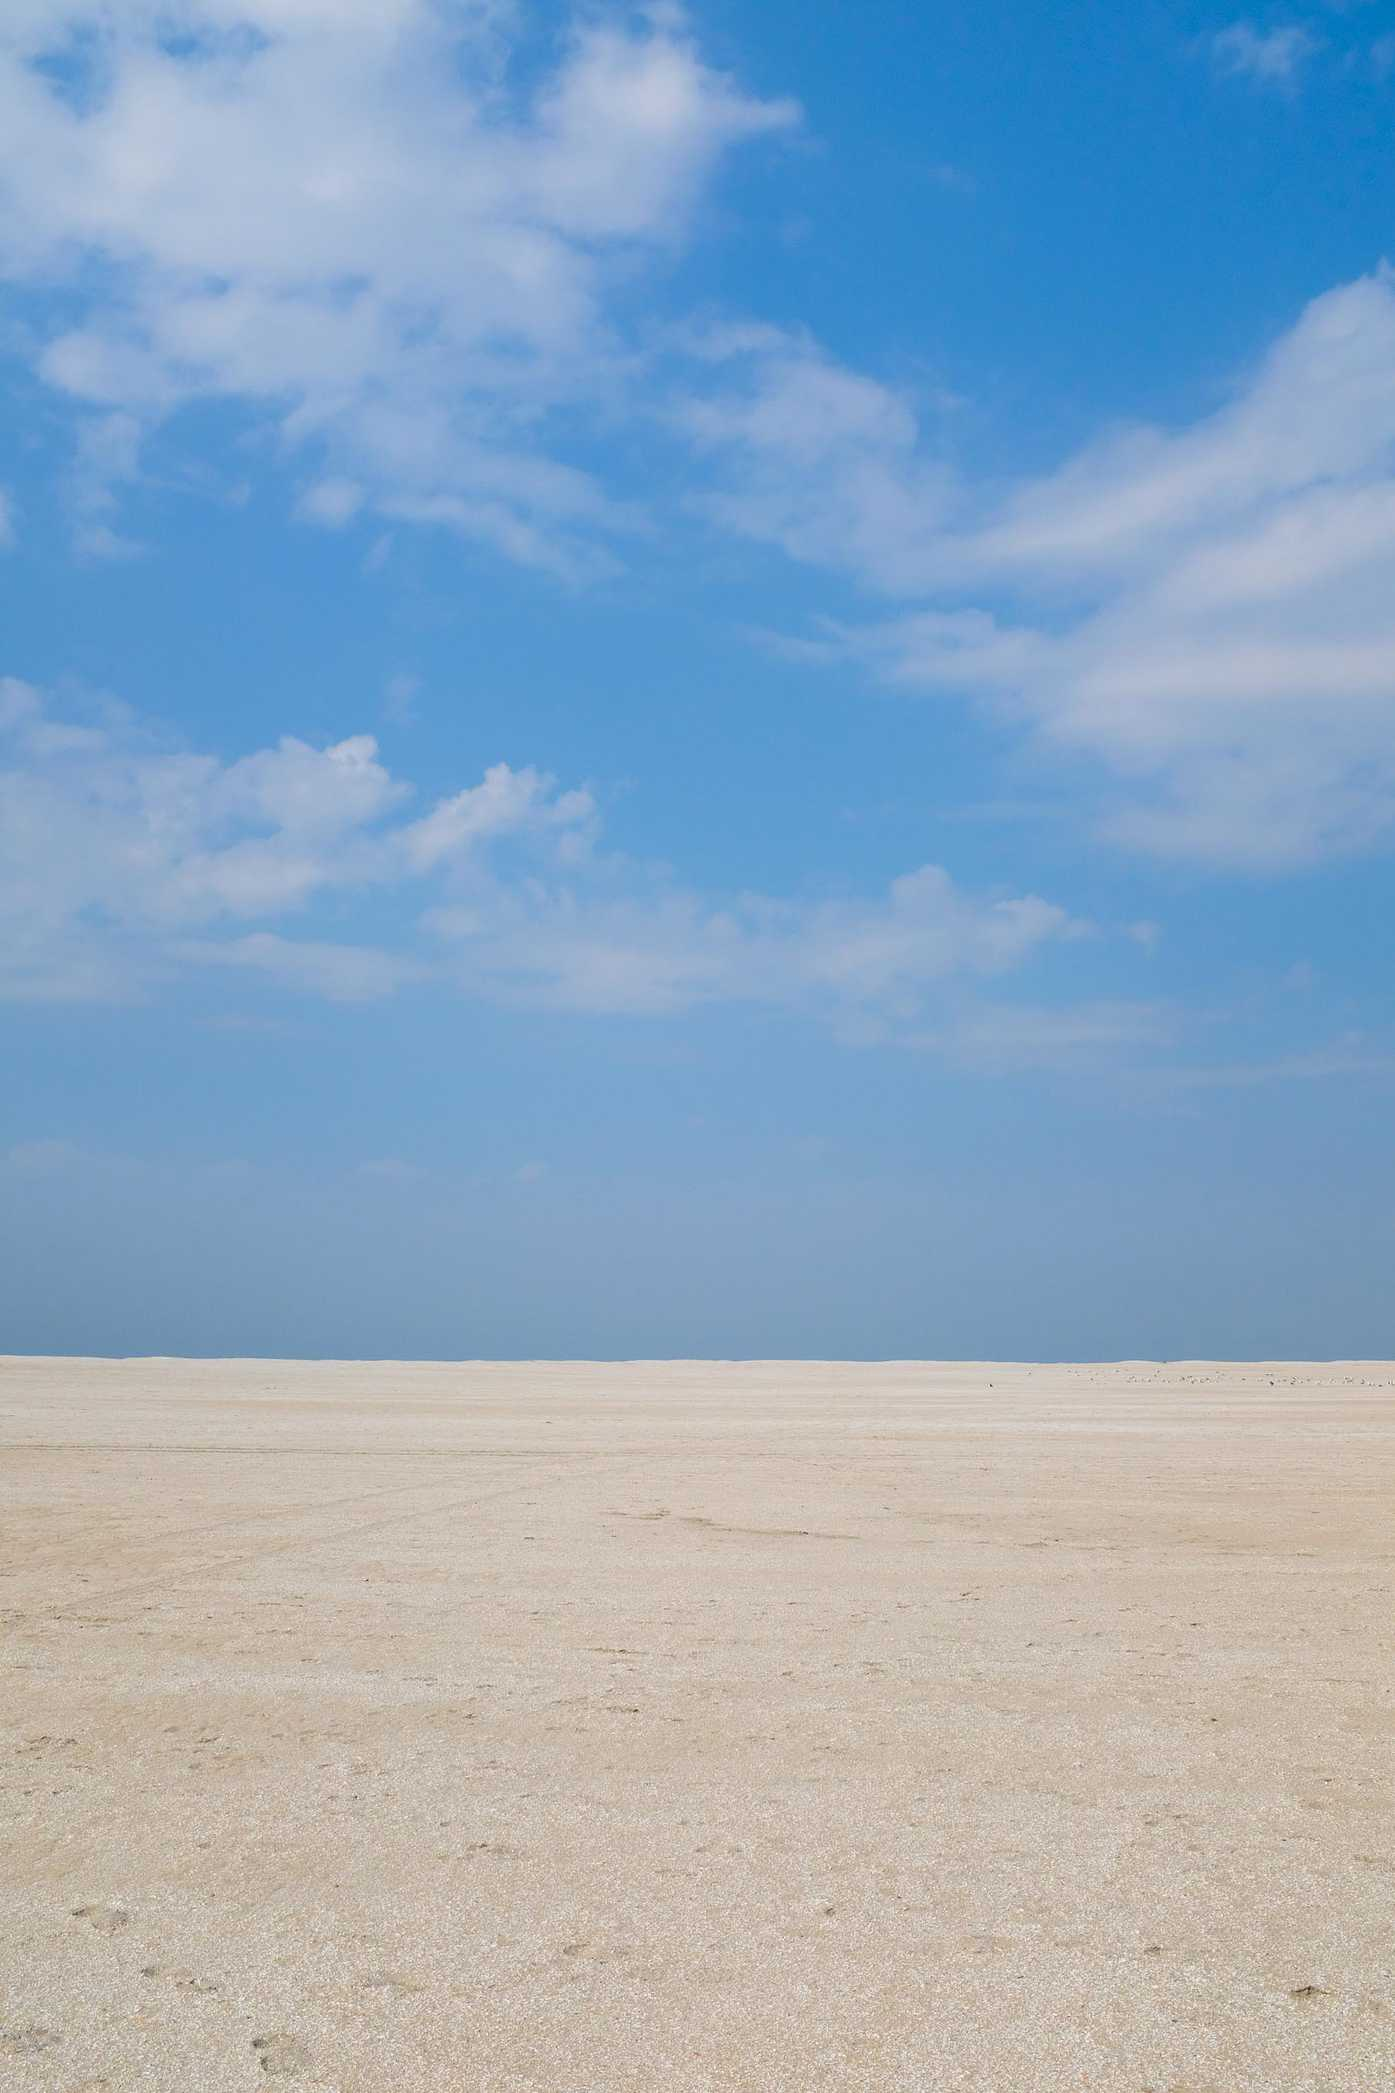 A large expanse of sand and sky